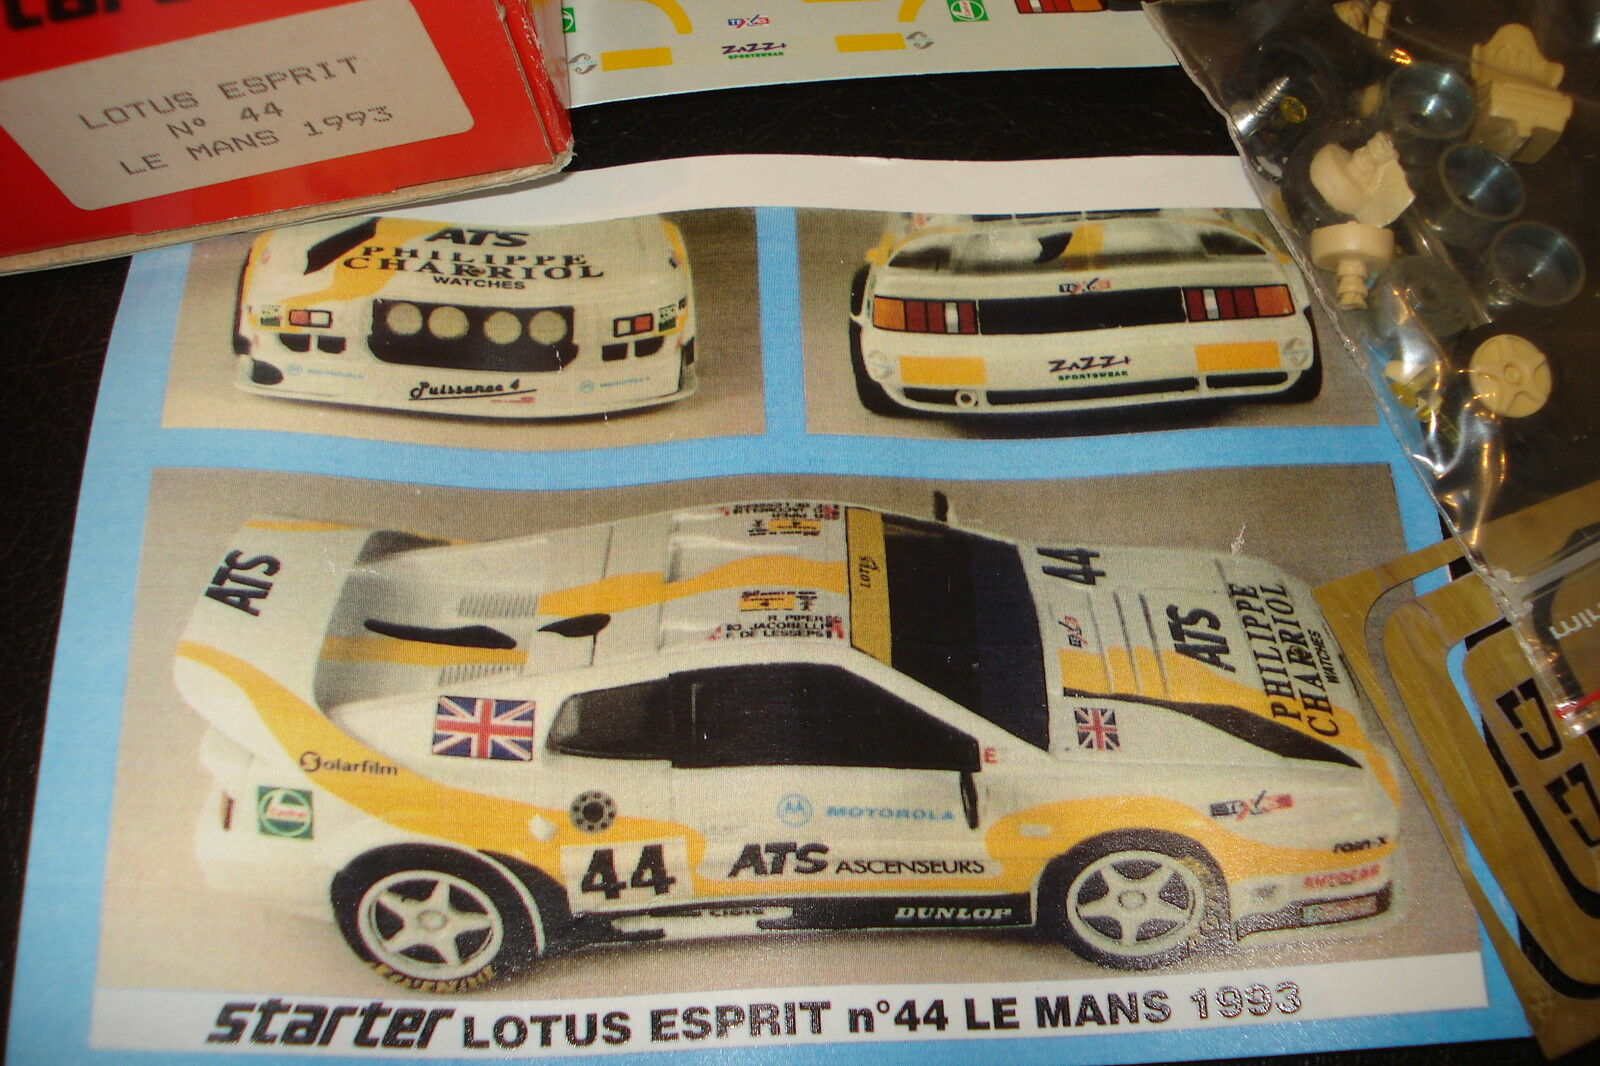 Lotus Esprit Le Mans 1993 1 43 Starter Resin Kit unbuilt rar raro n. AMR BBR rar